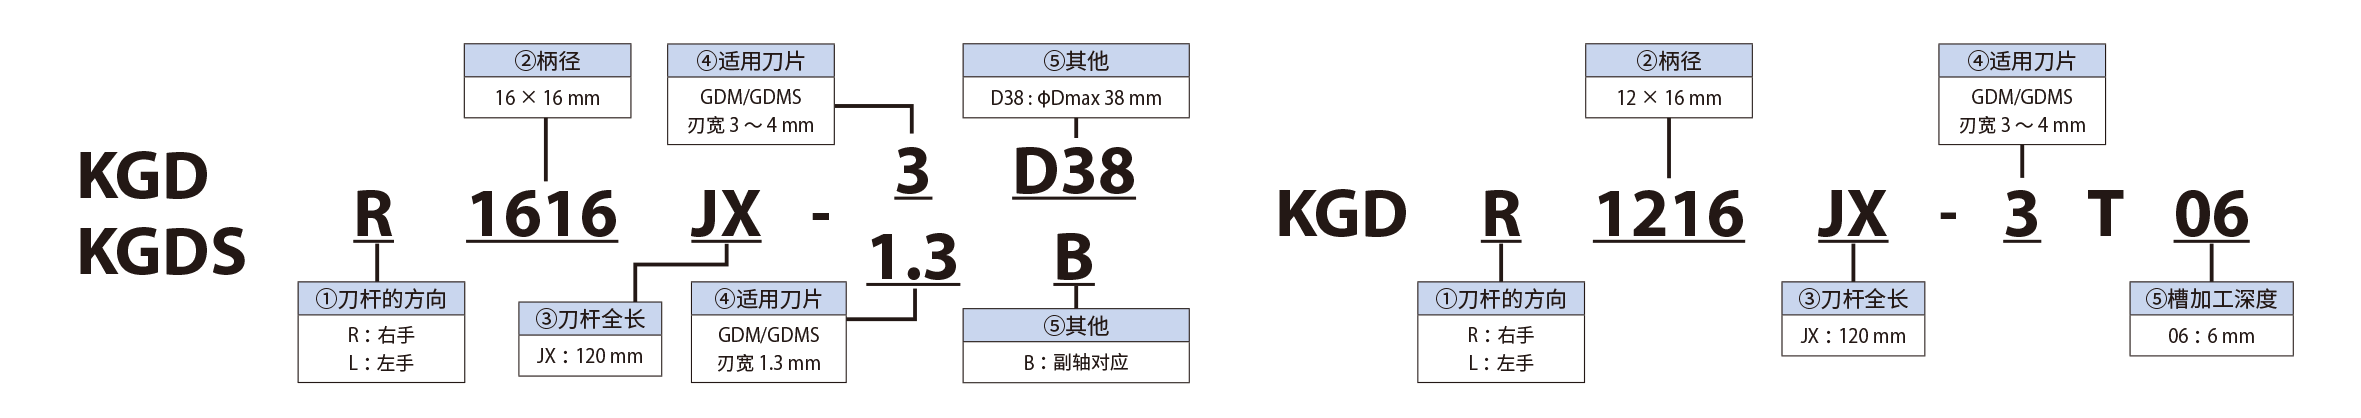 KGD 25